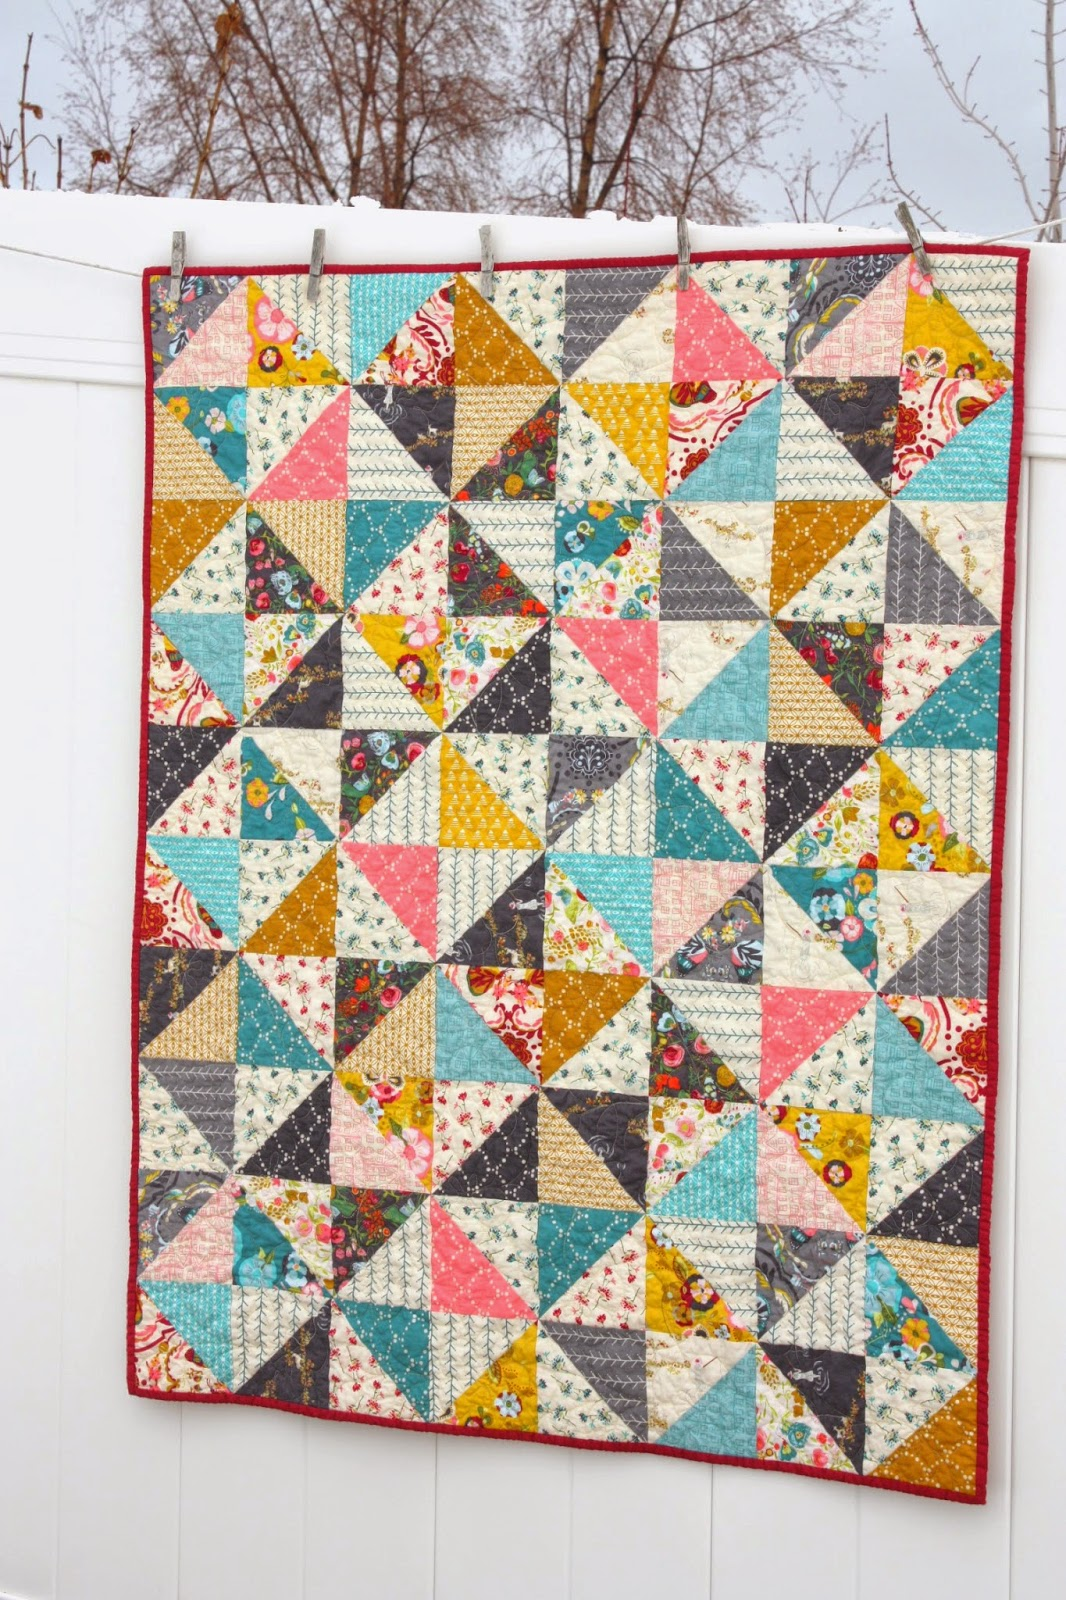 Quilt Patterns Quarter Square Triangles : Half Square Triangle baby quilt pattern